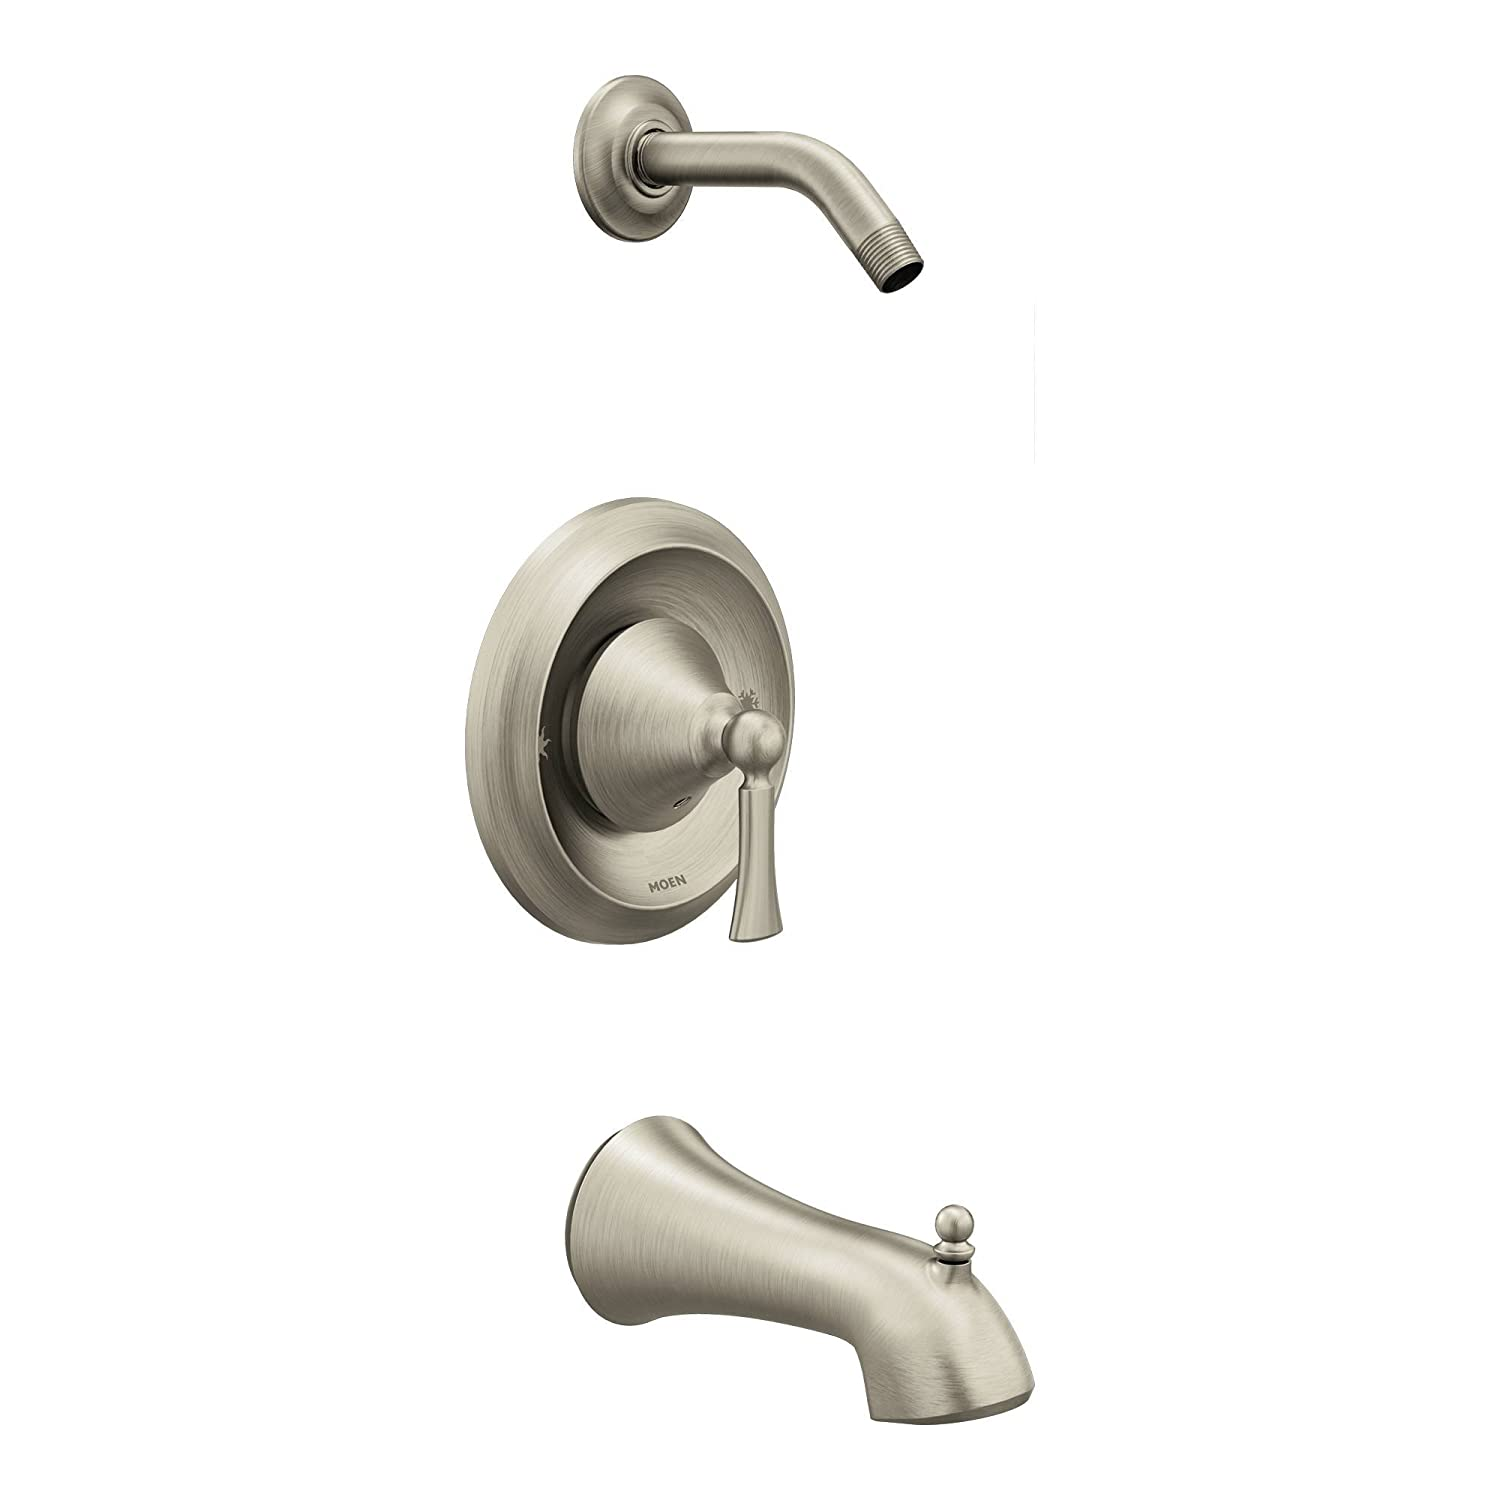 Moen T4503NHBN Wynford Posi-Temp Tub//Shower Trim without Shower Head Brushed Nickel Moen Incorporated